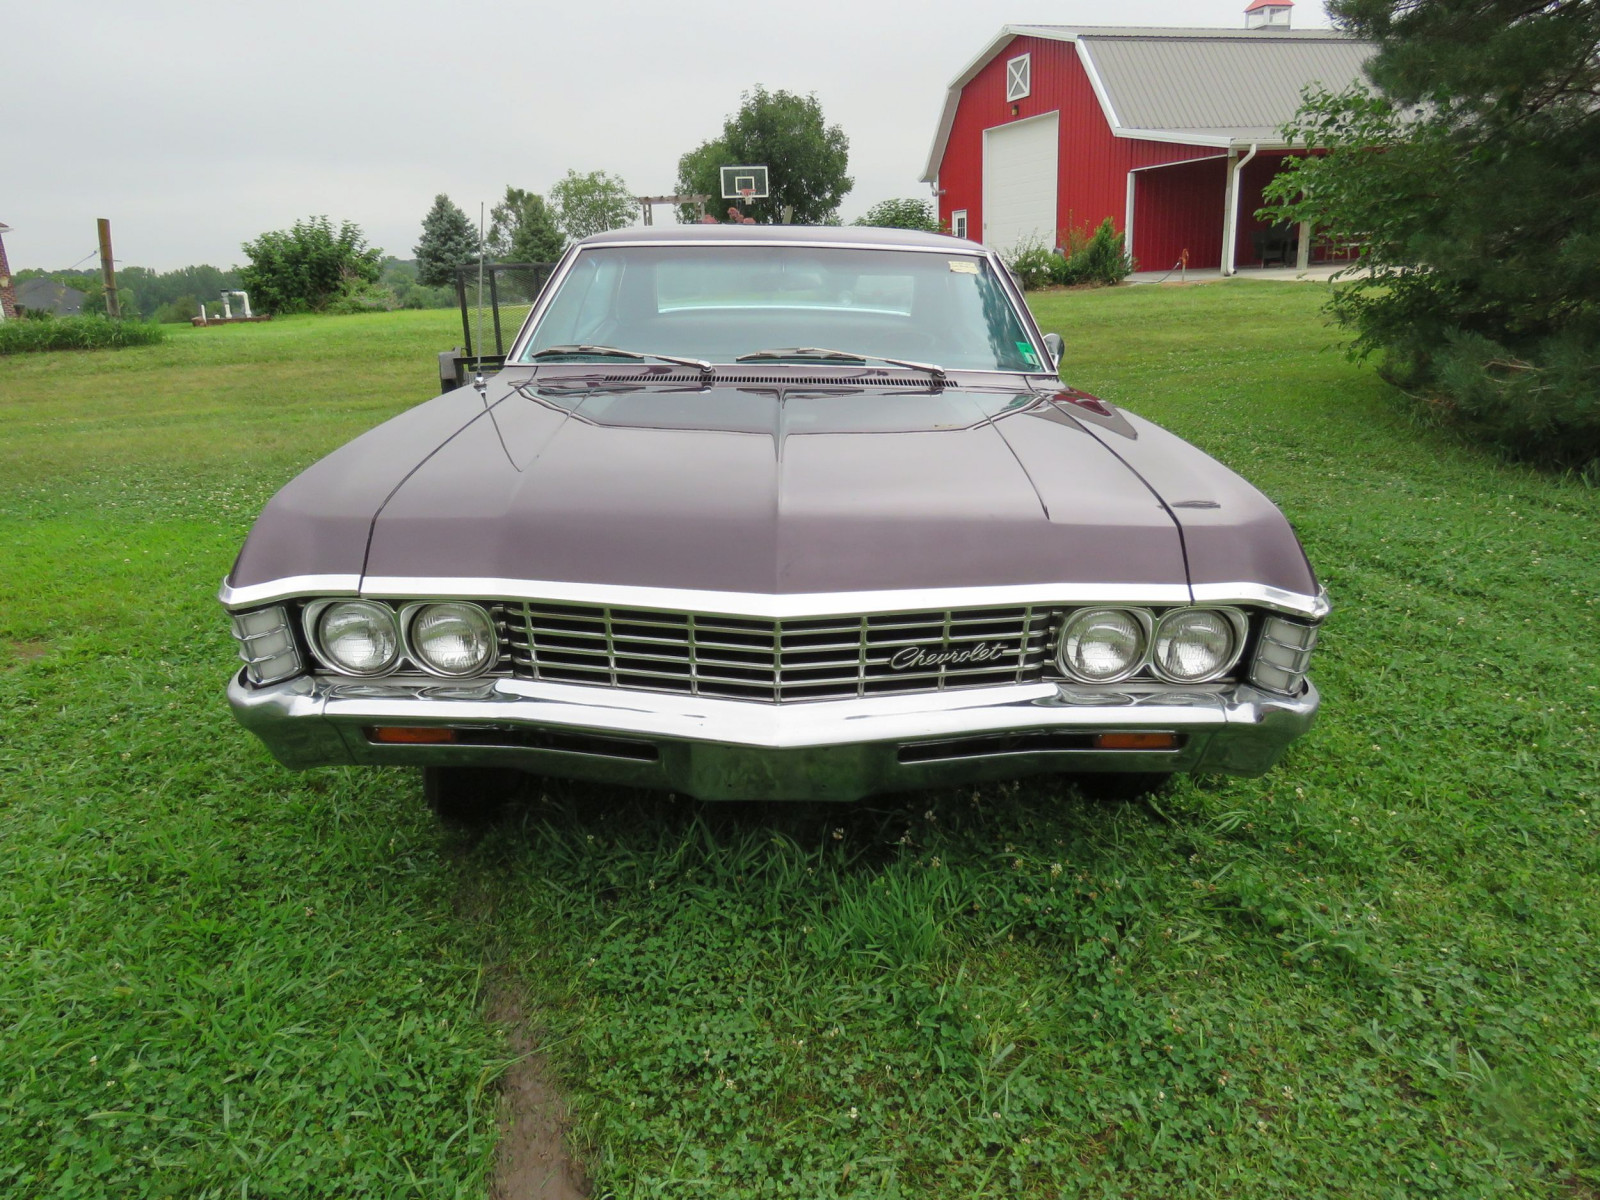 1967 Chevrolet Caprice 4dr HT - Image 2